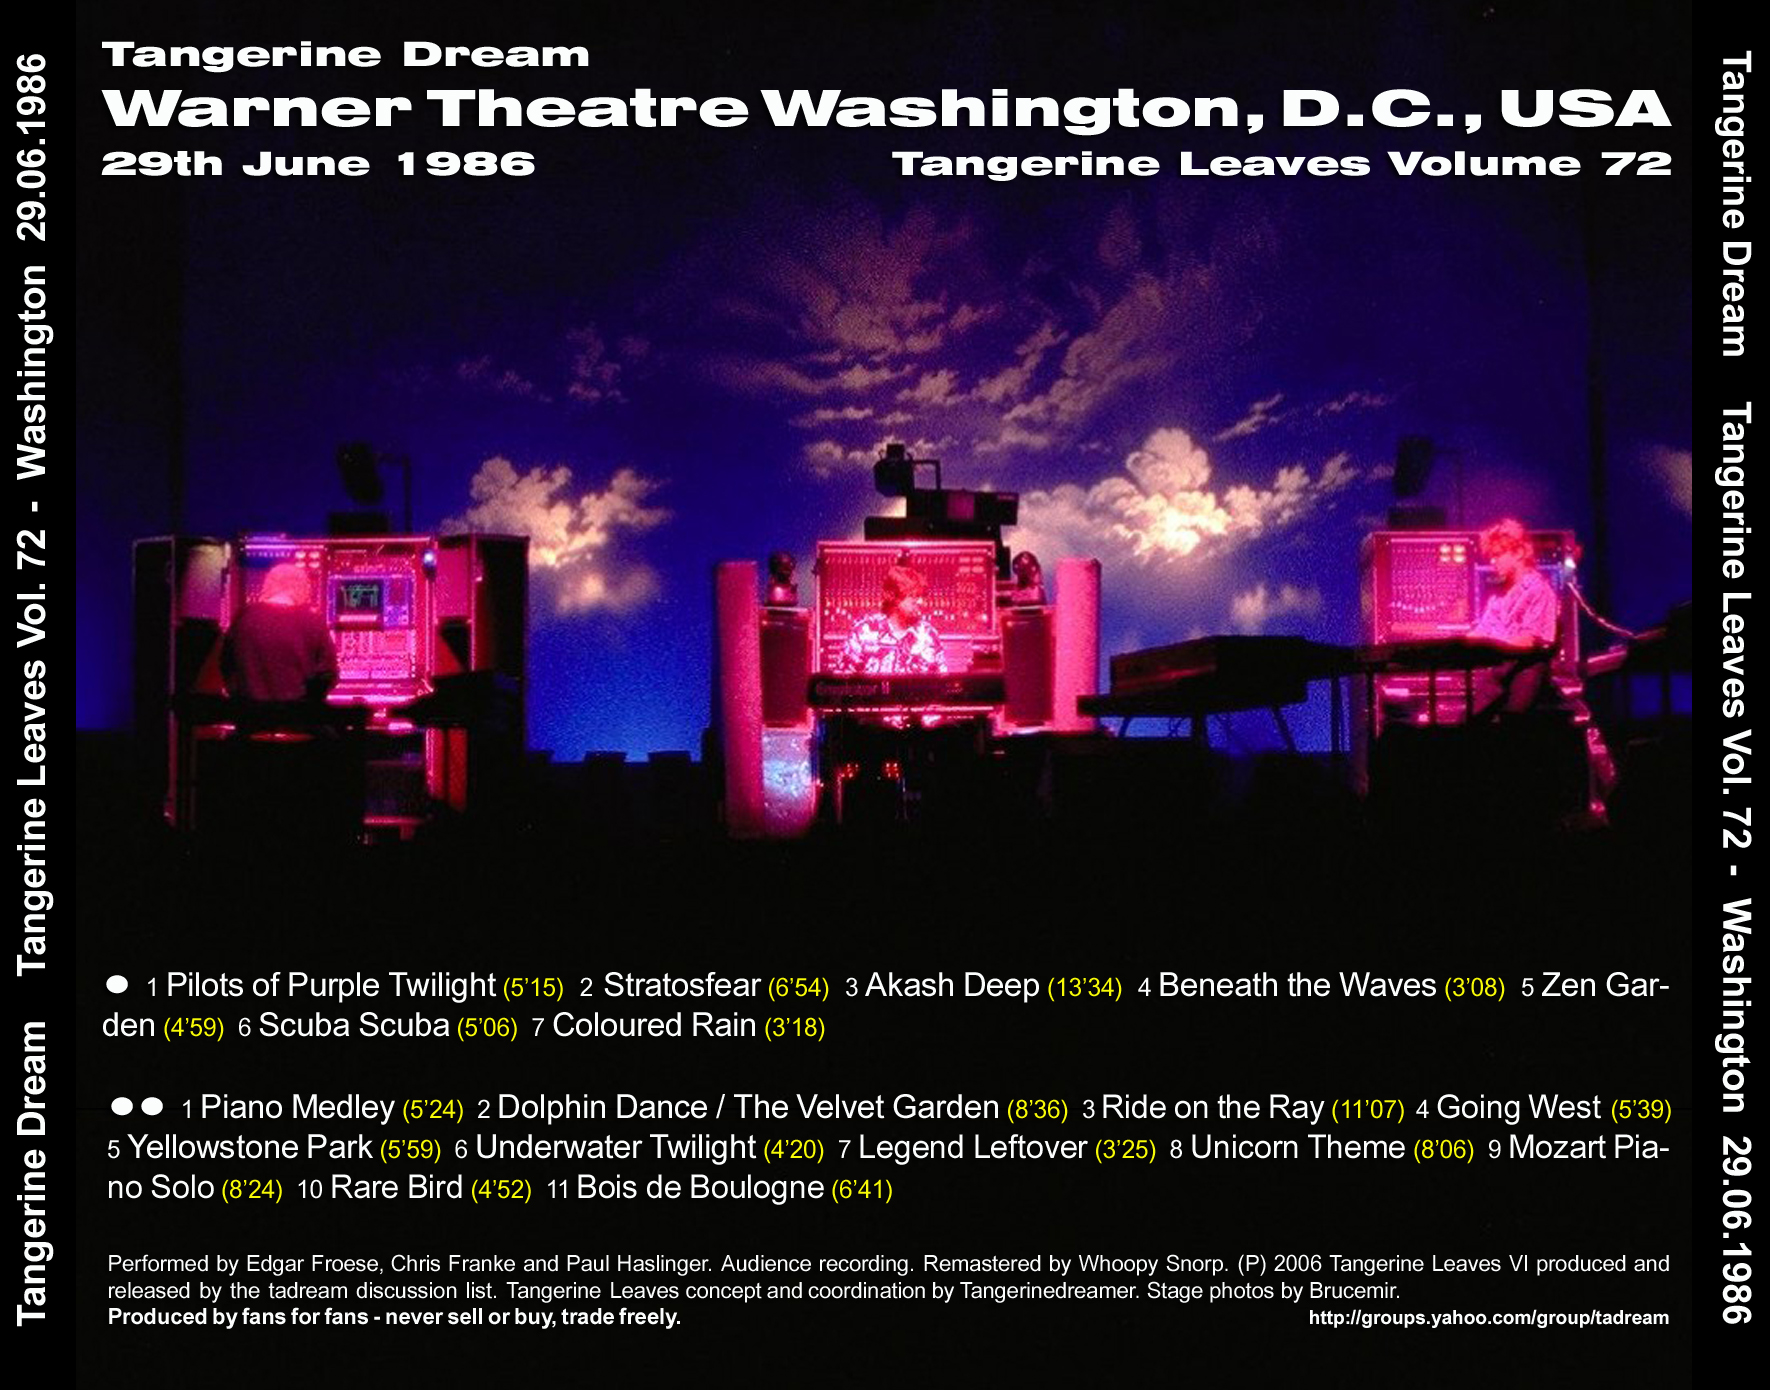 TangerineDream1986-06-29WarnerTheaterWashingtonDC (1).jpg